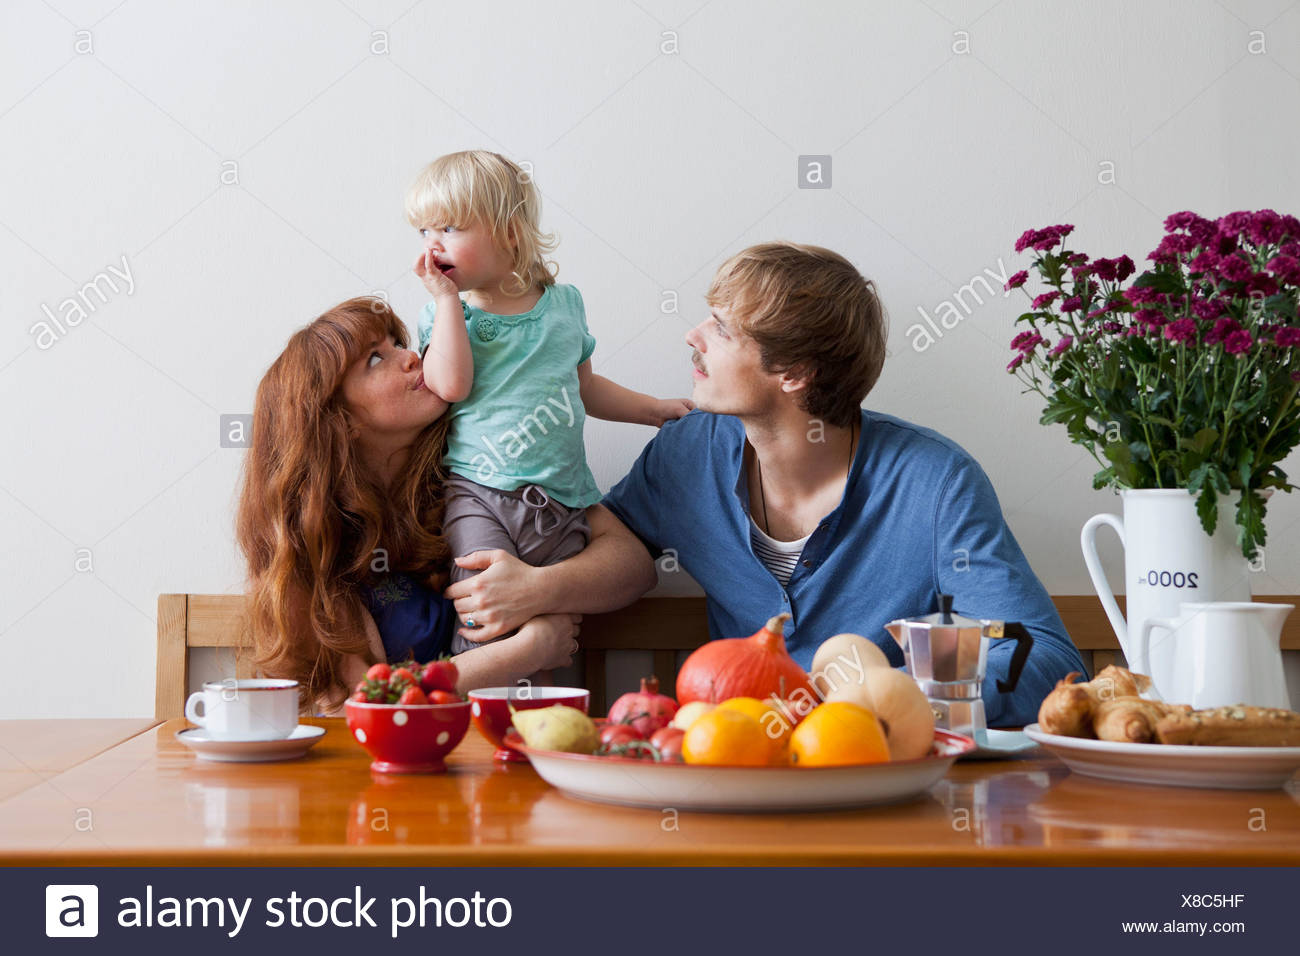 A young family having breakfast - Stock Image